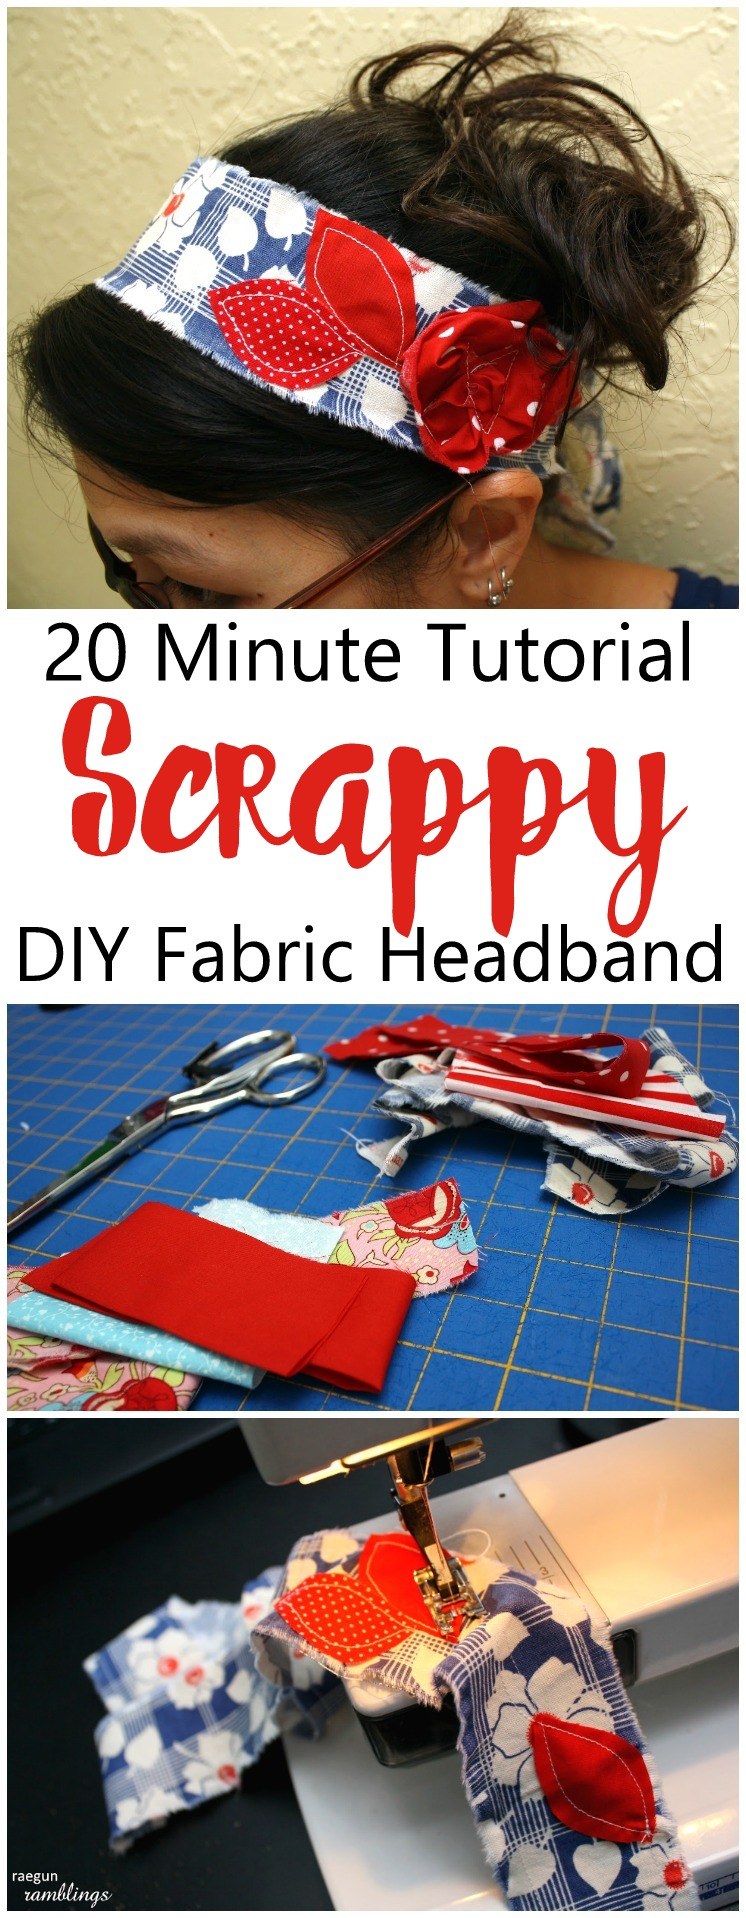 Just made one of these DIY headbands in 10 minutes and it turned out great! Perfect use of fabric scraps, easy sewing tutorial and pattern and love having my hair up in it!